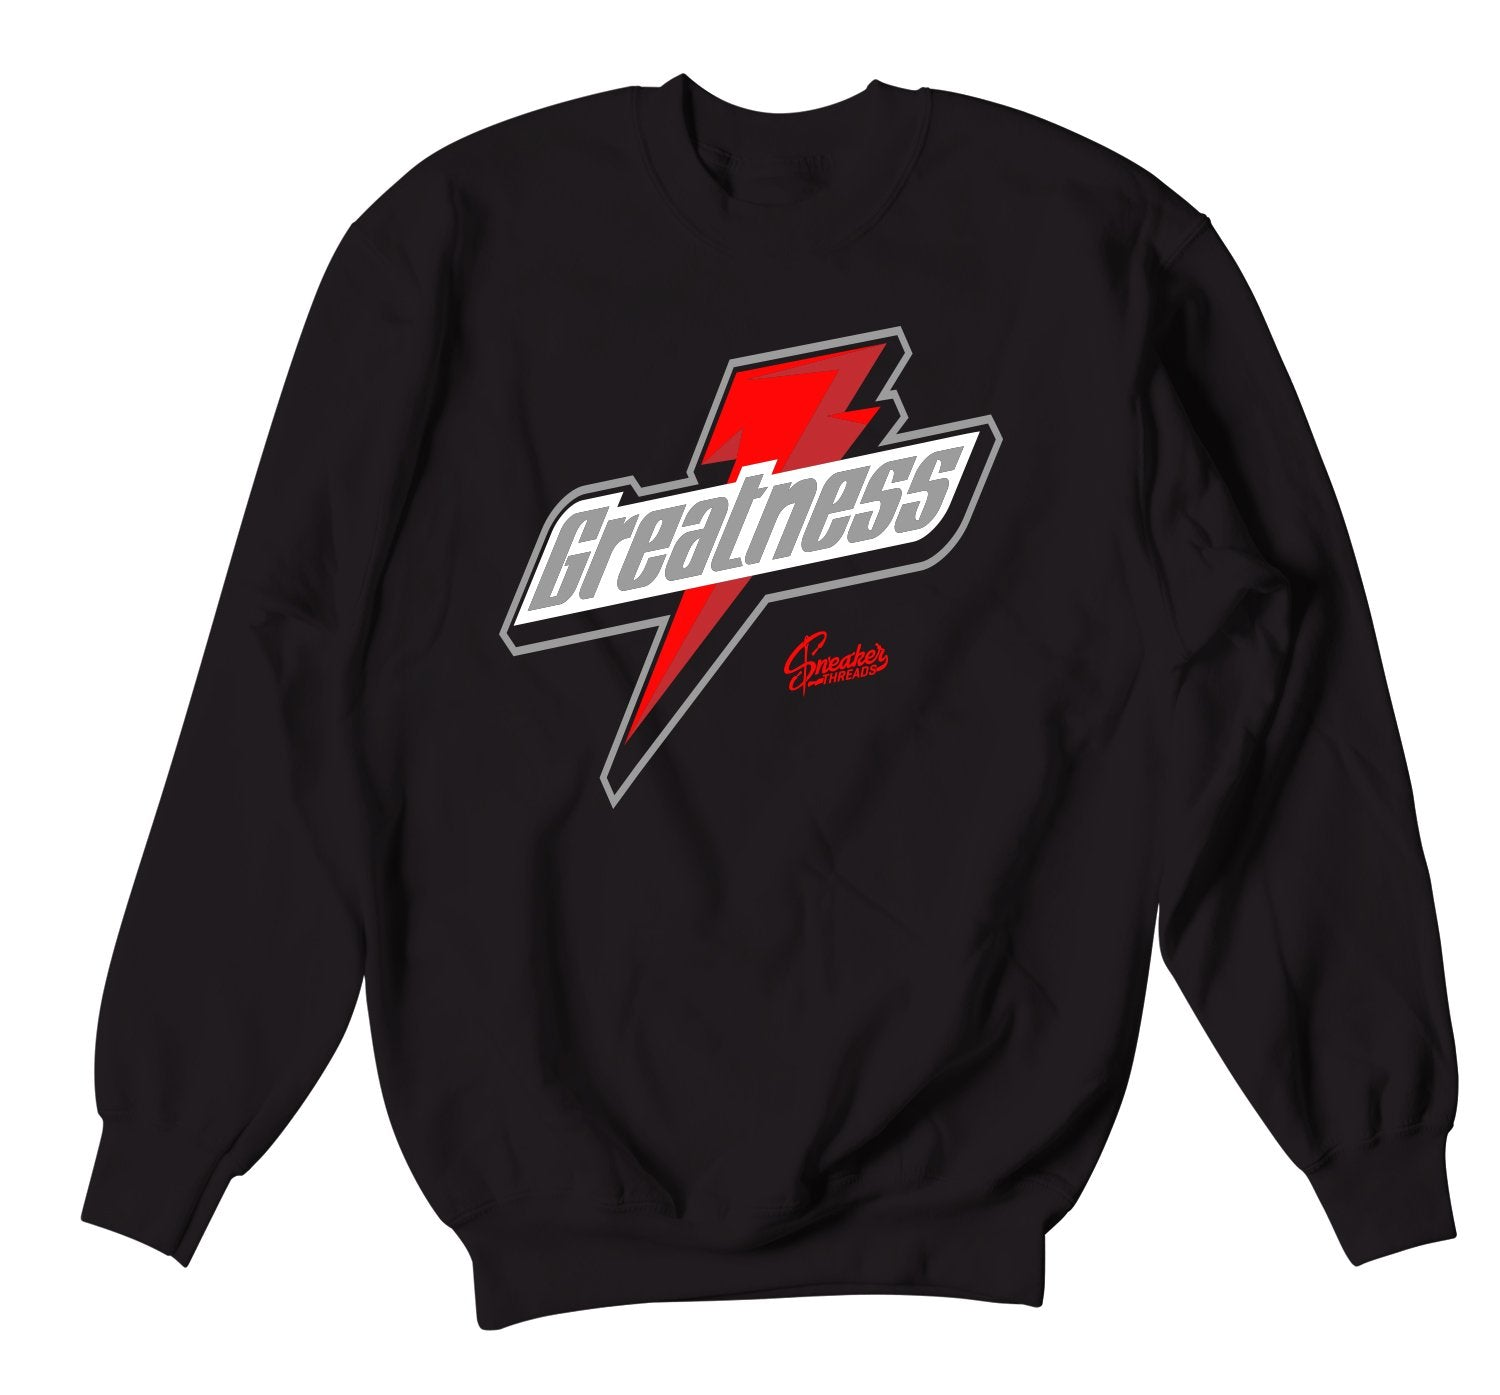 crewneck sweatshirts created to match the bred 11s perfect